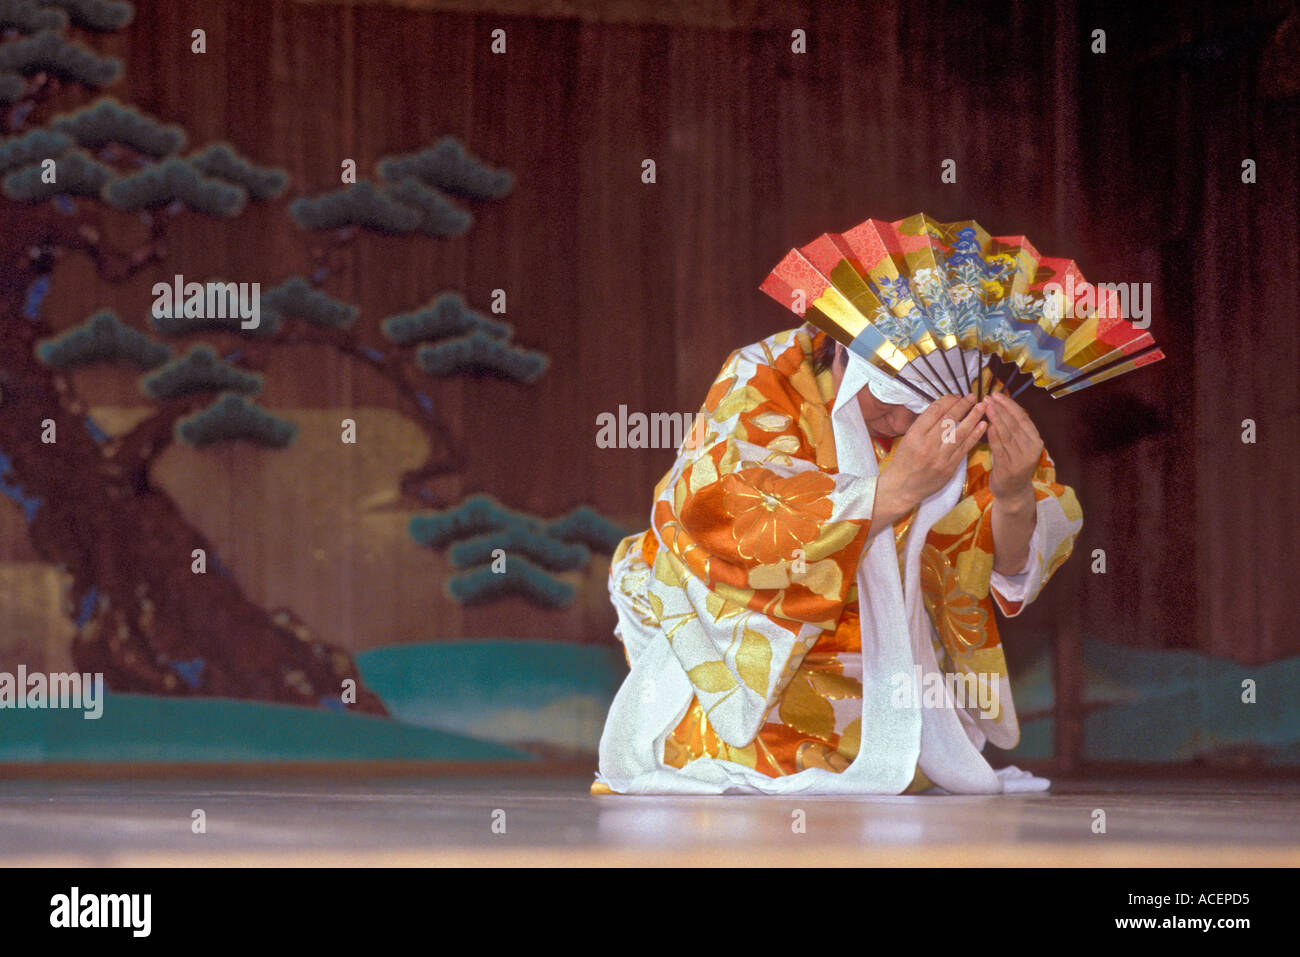 Performer In Traditional Noh Costume Holding Fan Executes A Move During A Kyogen Play Stock